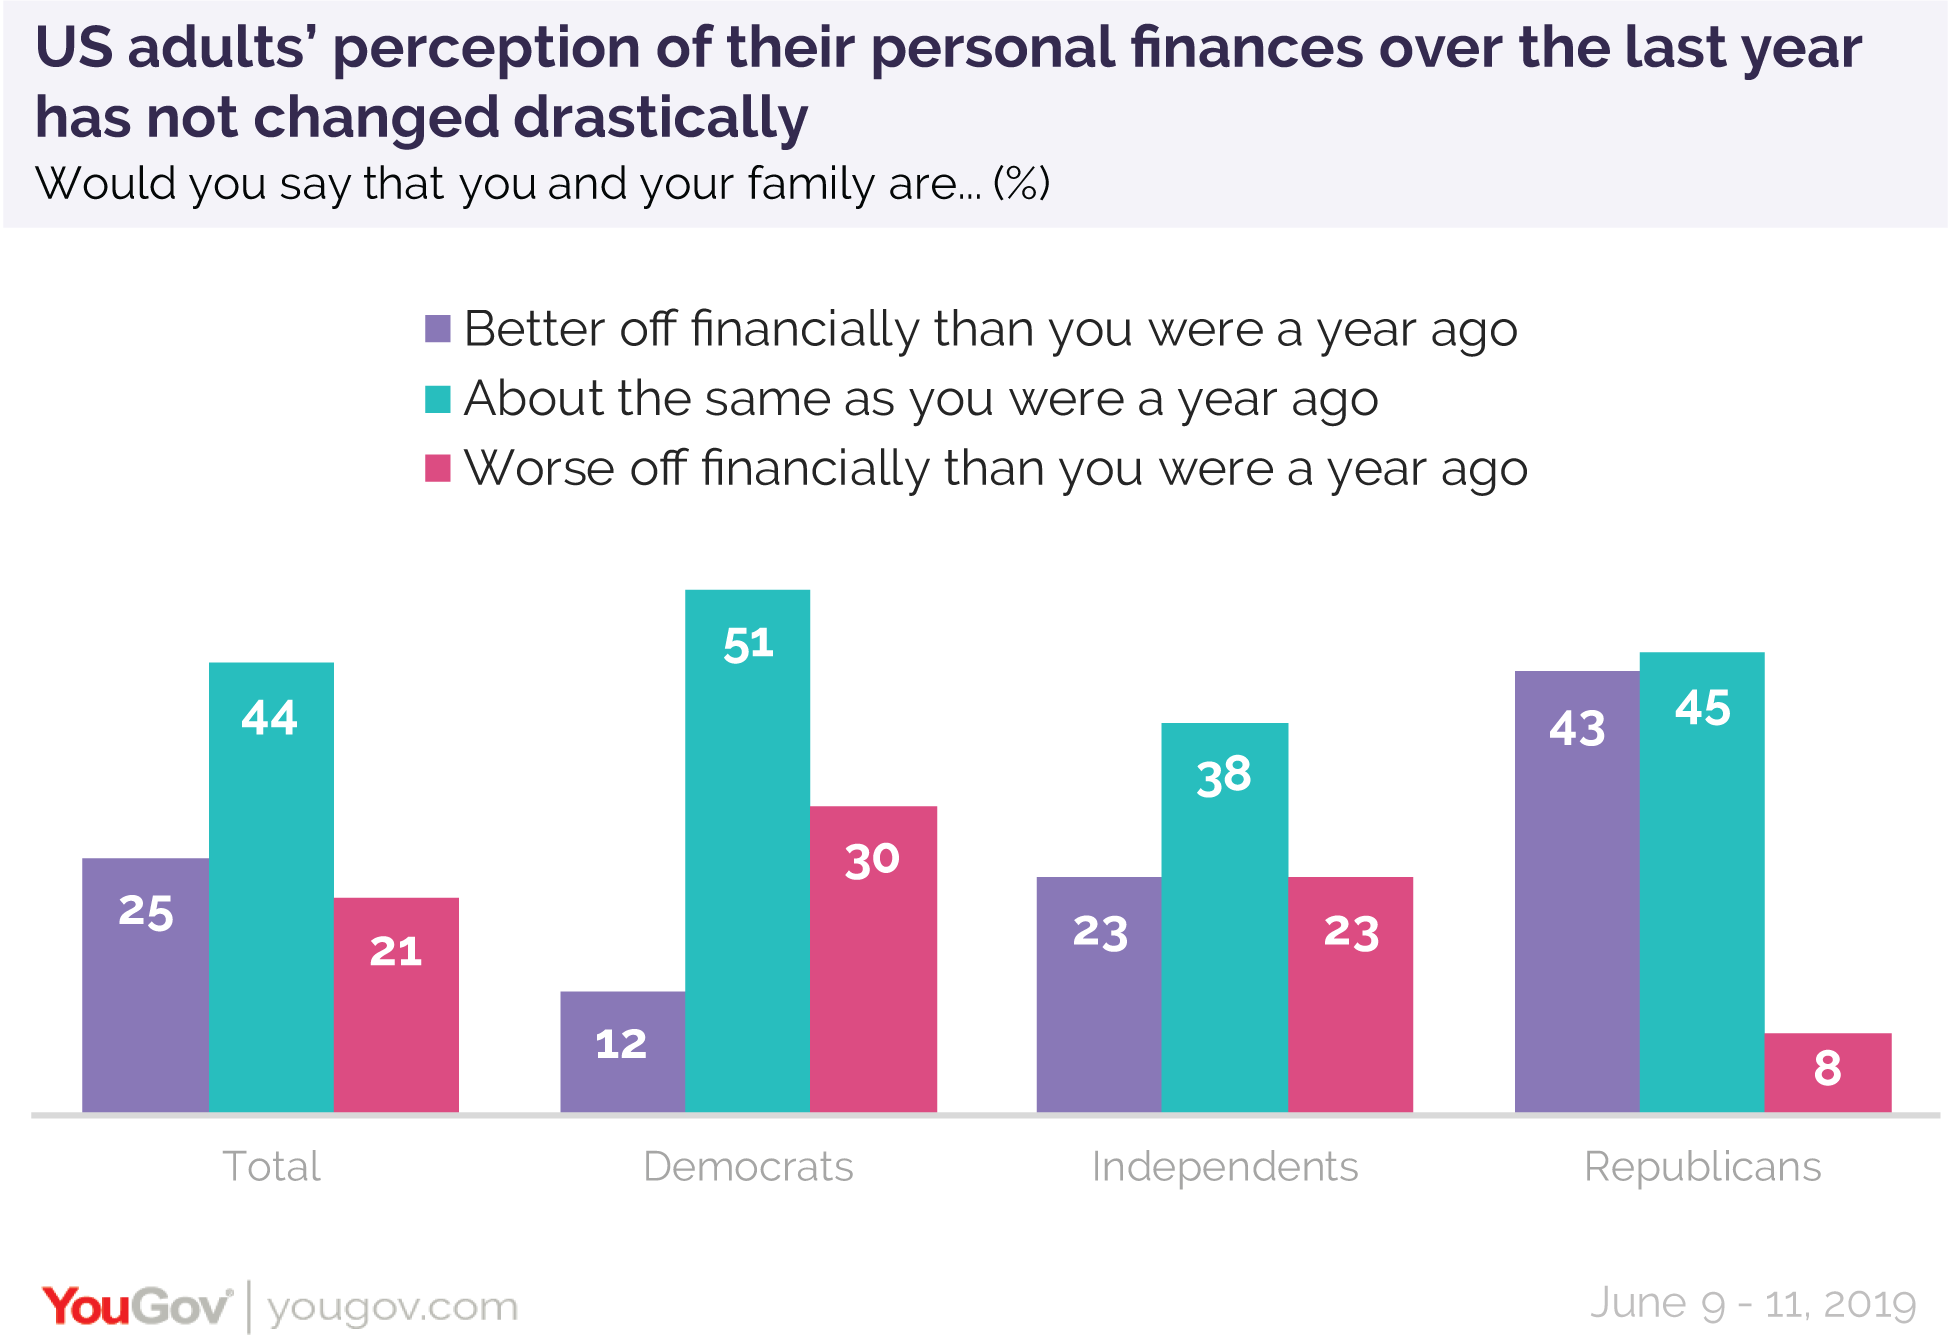 US adults' perception of their personal finances over the last year has not changed drastically